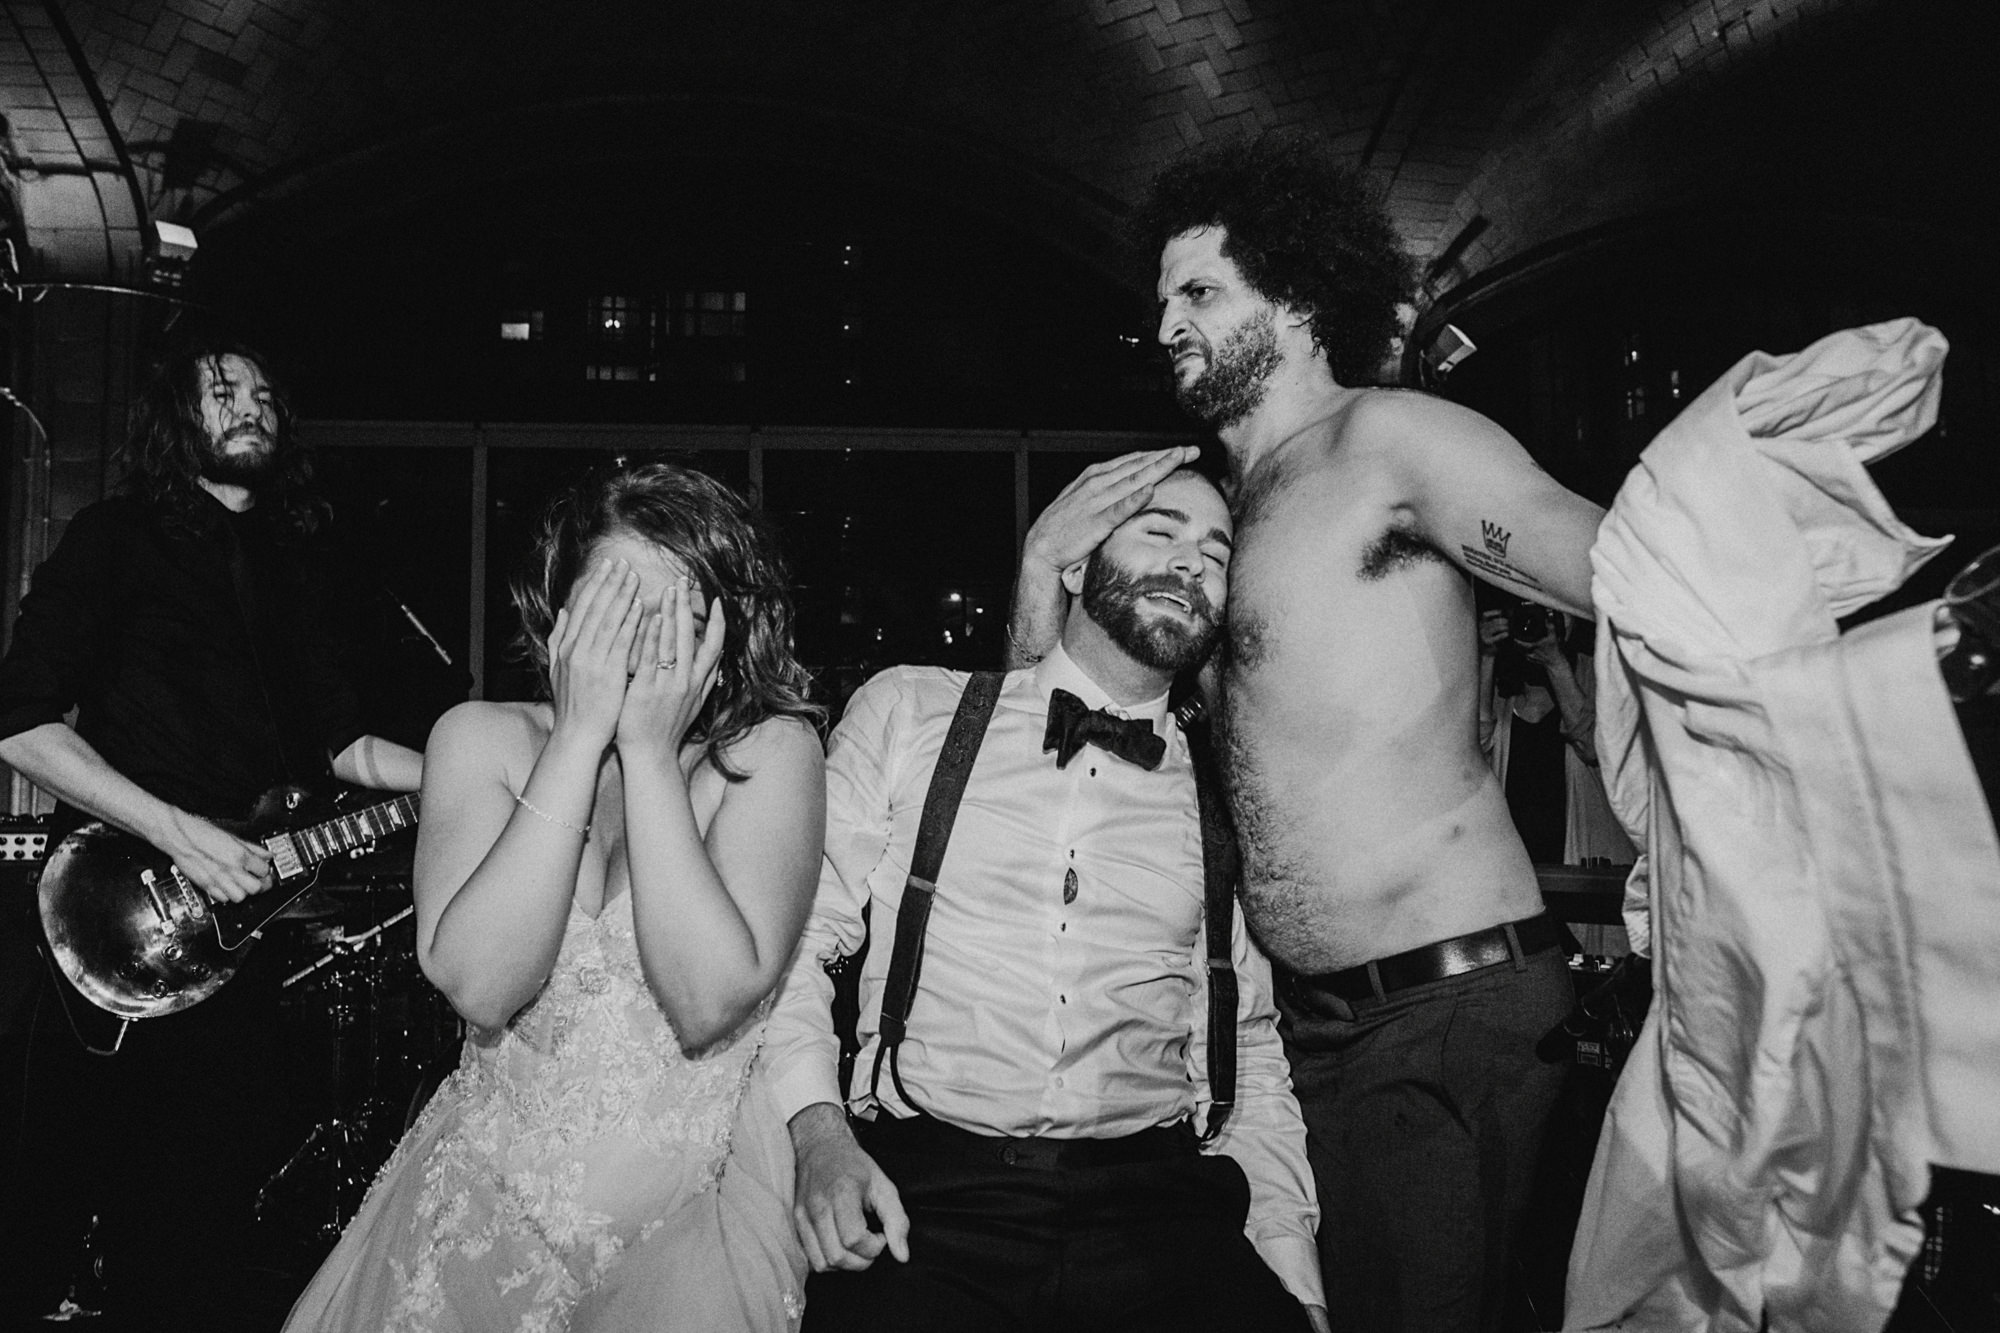 black-and-white-topless-guest-pressing-groom-head-onto-chest-worlds-best-wedding-photos-dan-o-day-australia-wedding-photographer